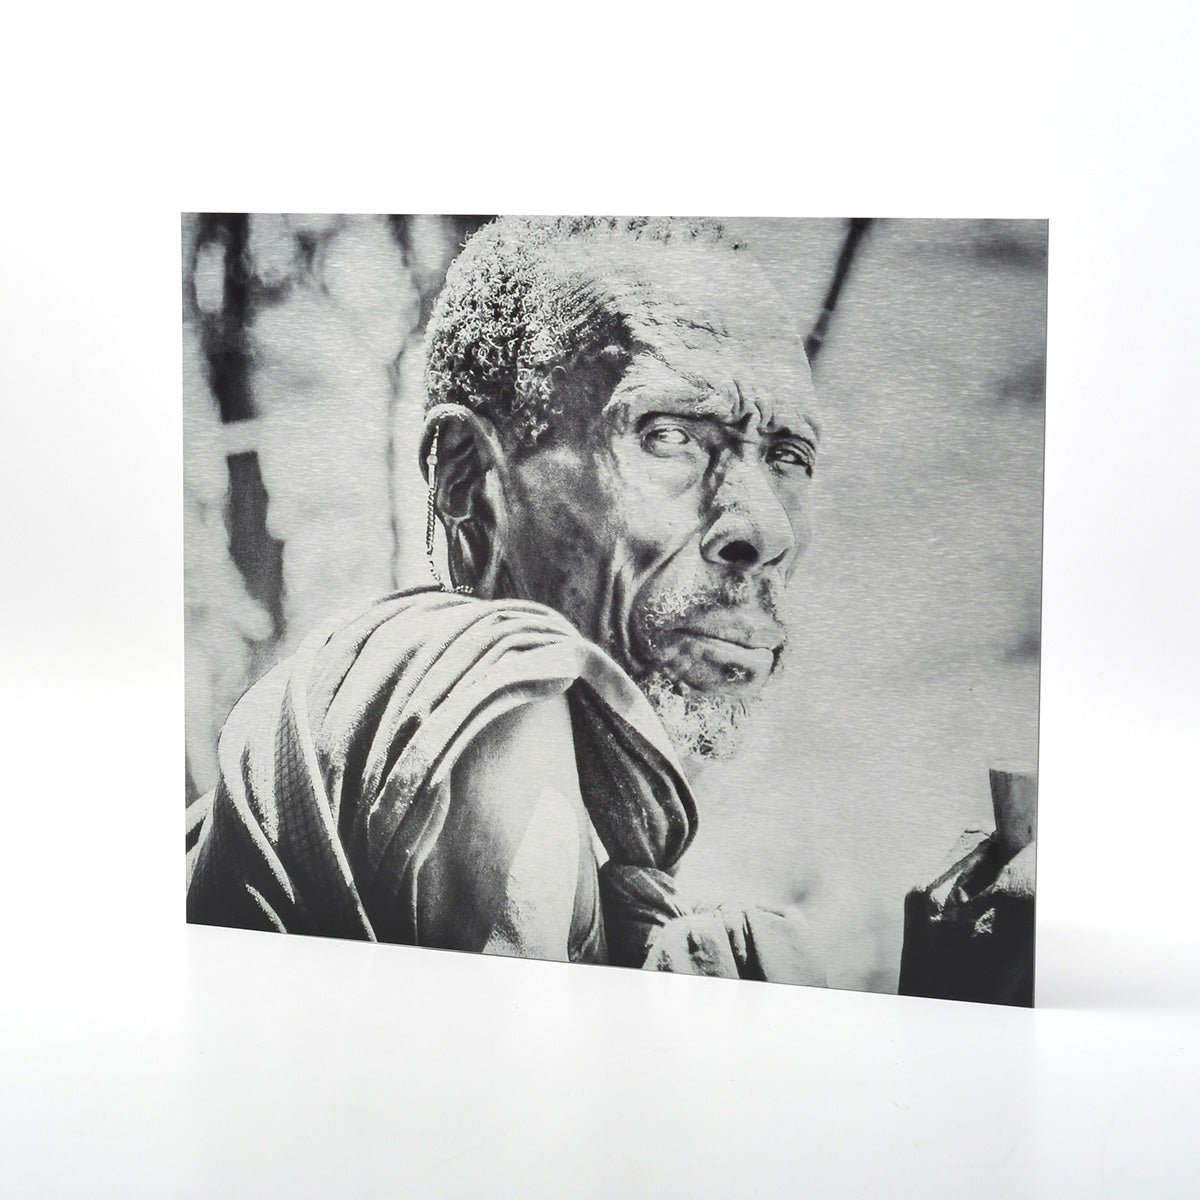 Photo of a Man from the Maasai Tribe in Tanzania Printed Directly onto Metal